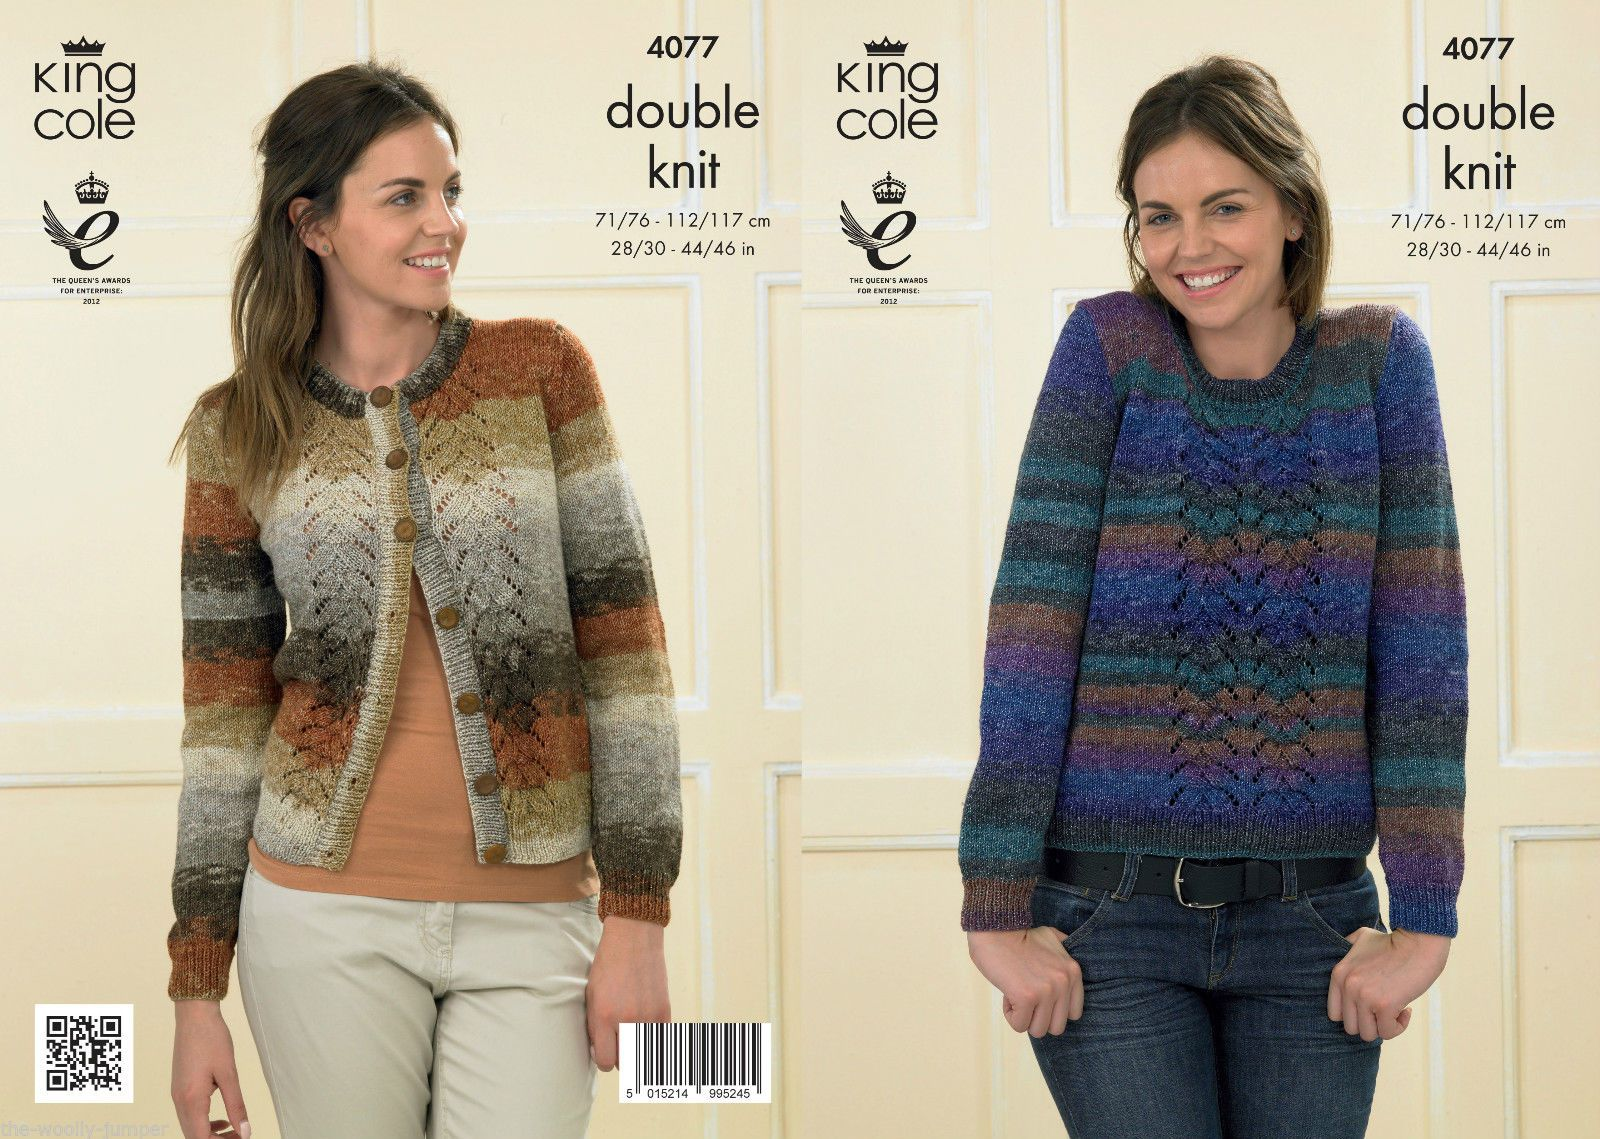 e05cc2eb594a 4077 - KING COLE SHINE DK CARDIGAN   SWEATER KNITTING PATTERN - TO FIT  CHEST SIZE 28 TO 46